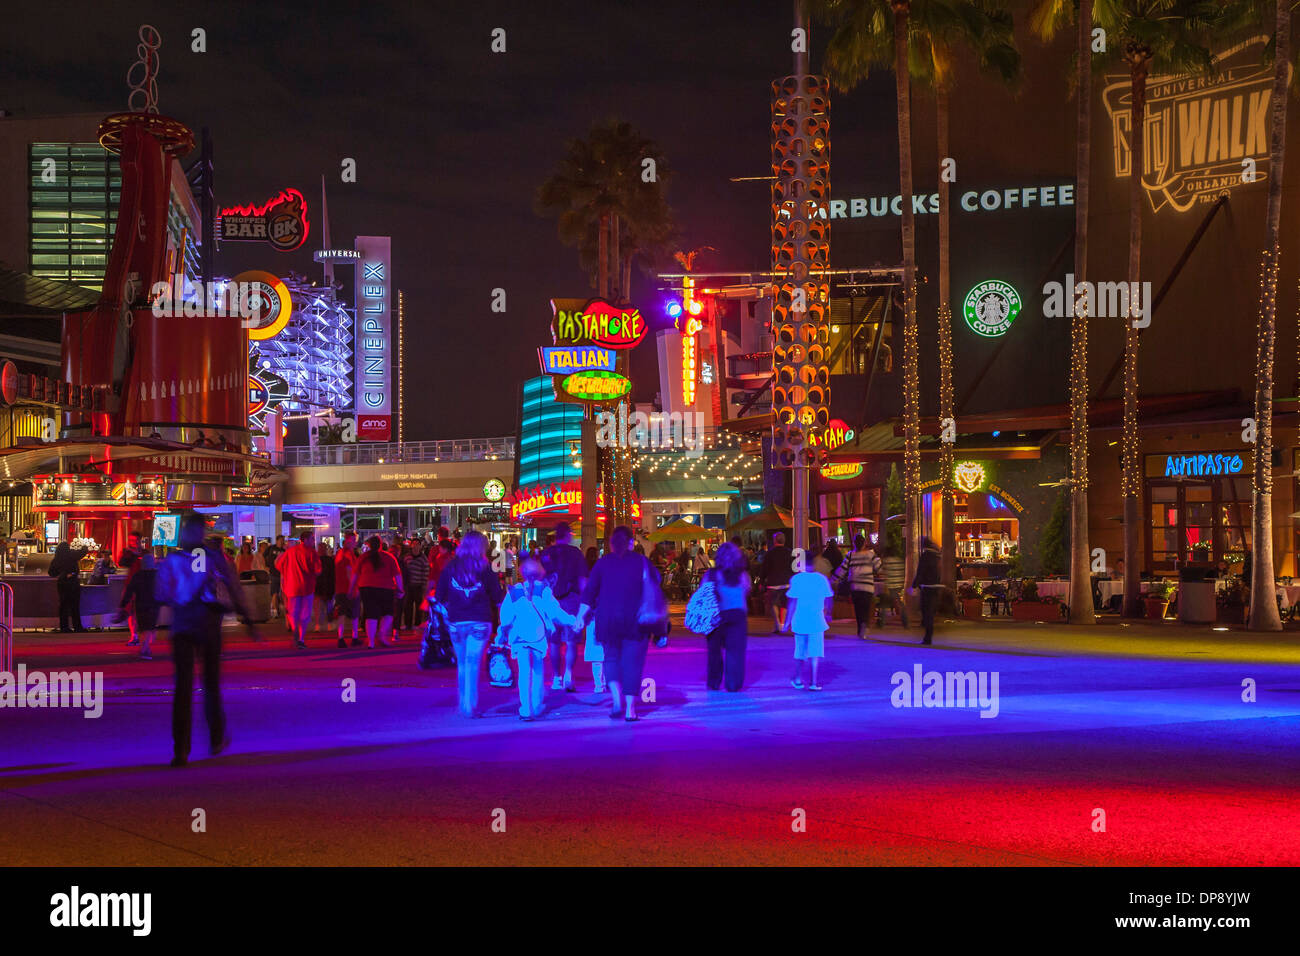 Bright colored neon lights near entrance to Universal Studios City Walk amusement park in Orlando, Florida - Stock Image